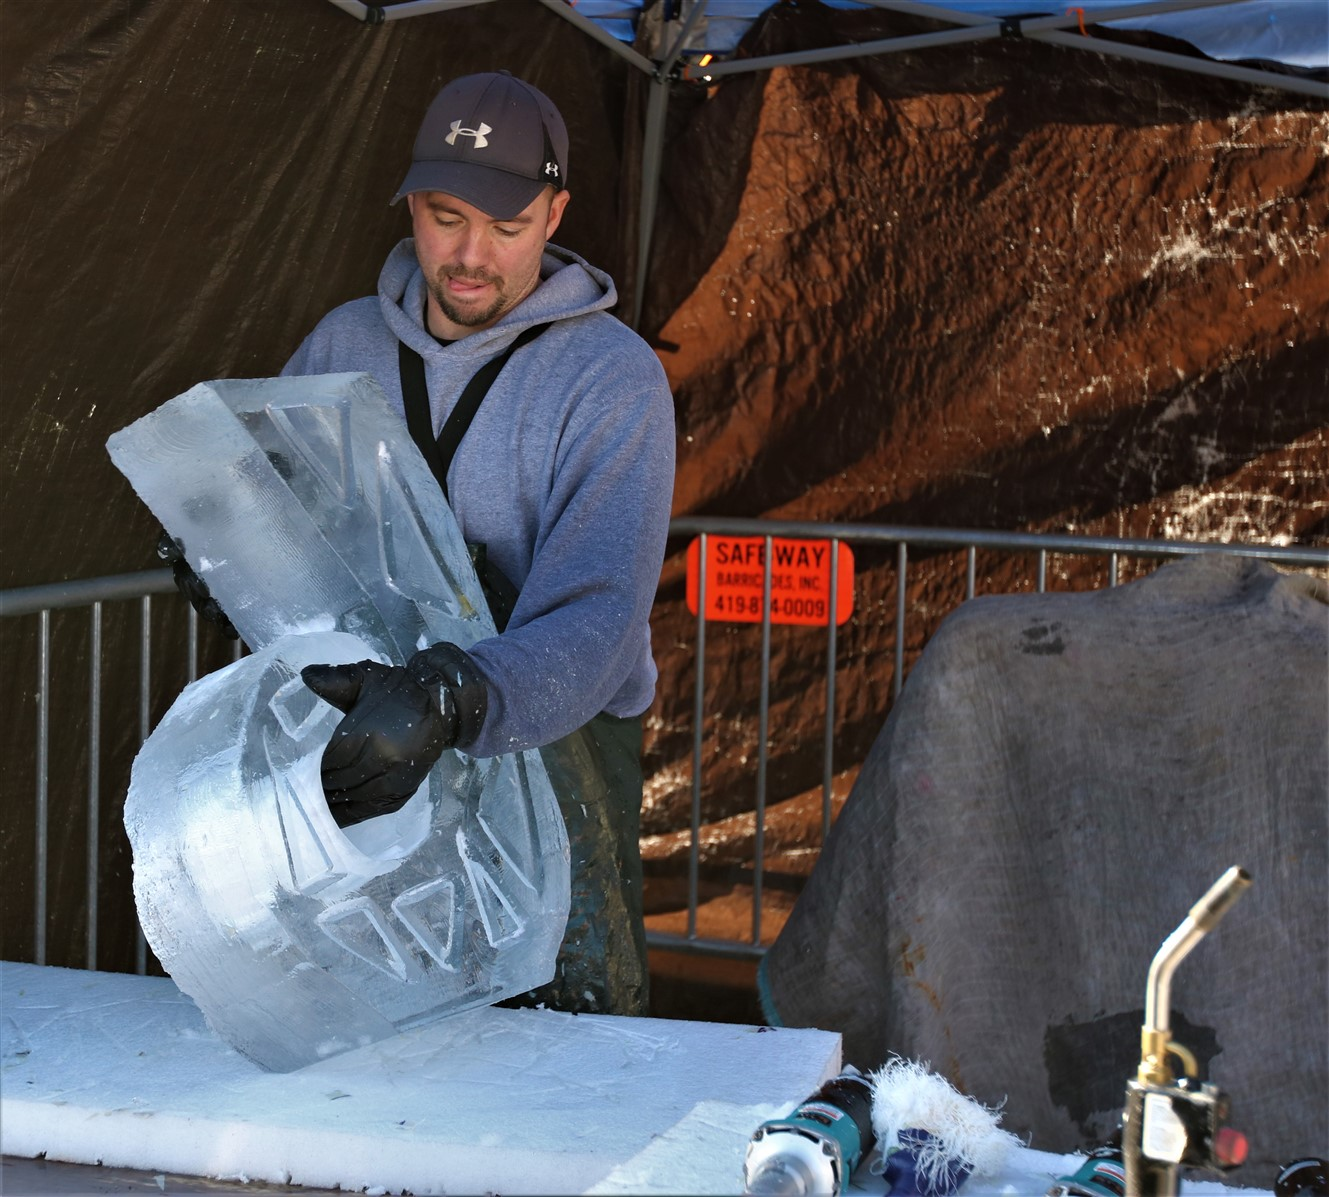 2017 02 18 51 Toledo National Ice Sculpting Championships.jpg